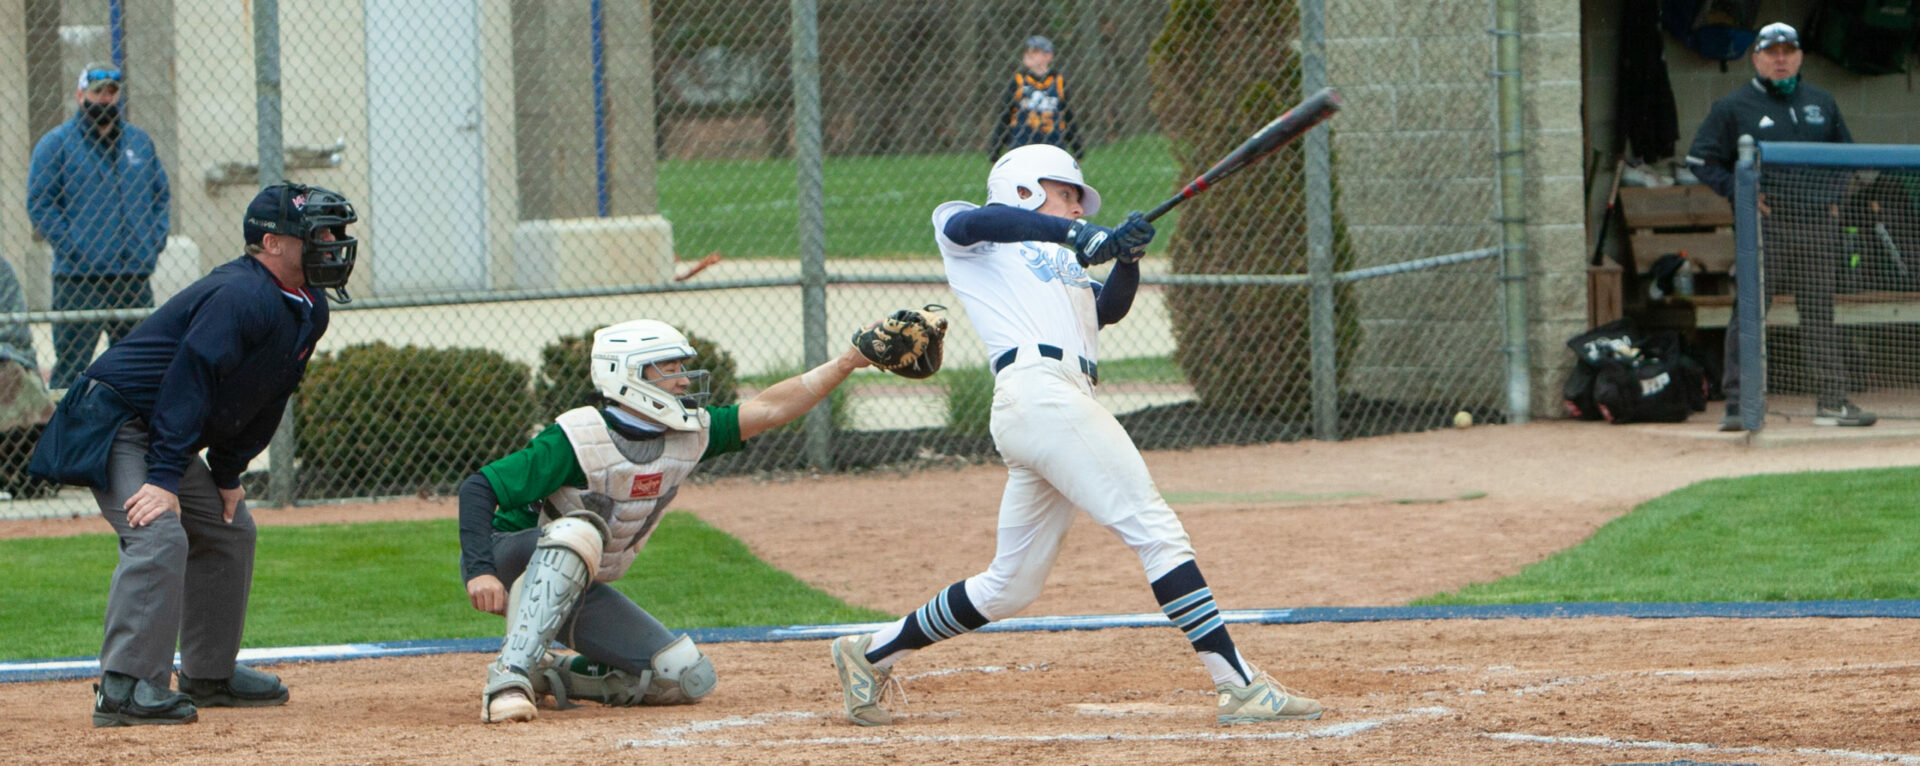 Mona Shores baseball team continues its domination of the GMAA Tier 1 tournament, downing R-P 8-1 in the finals